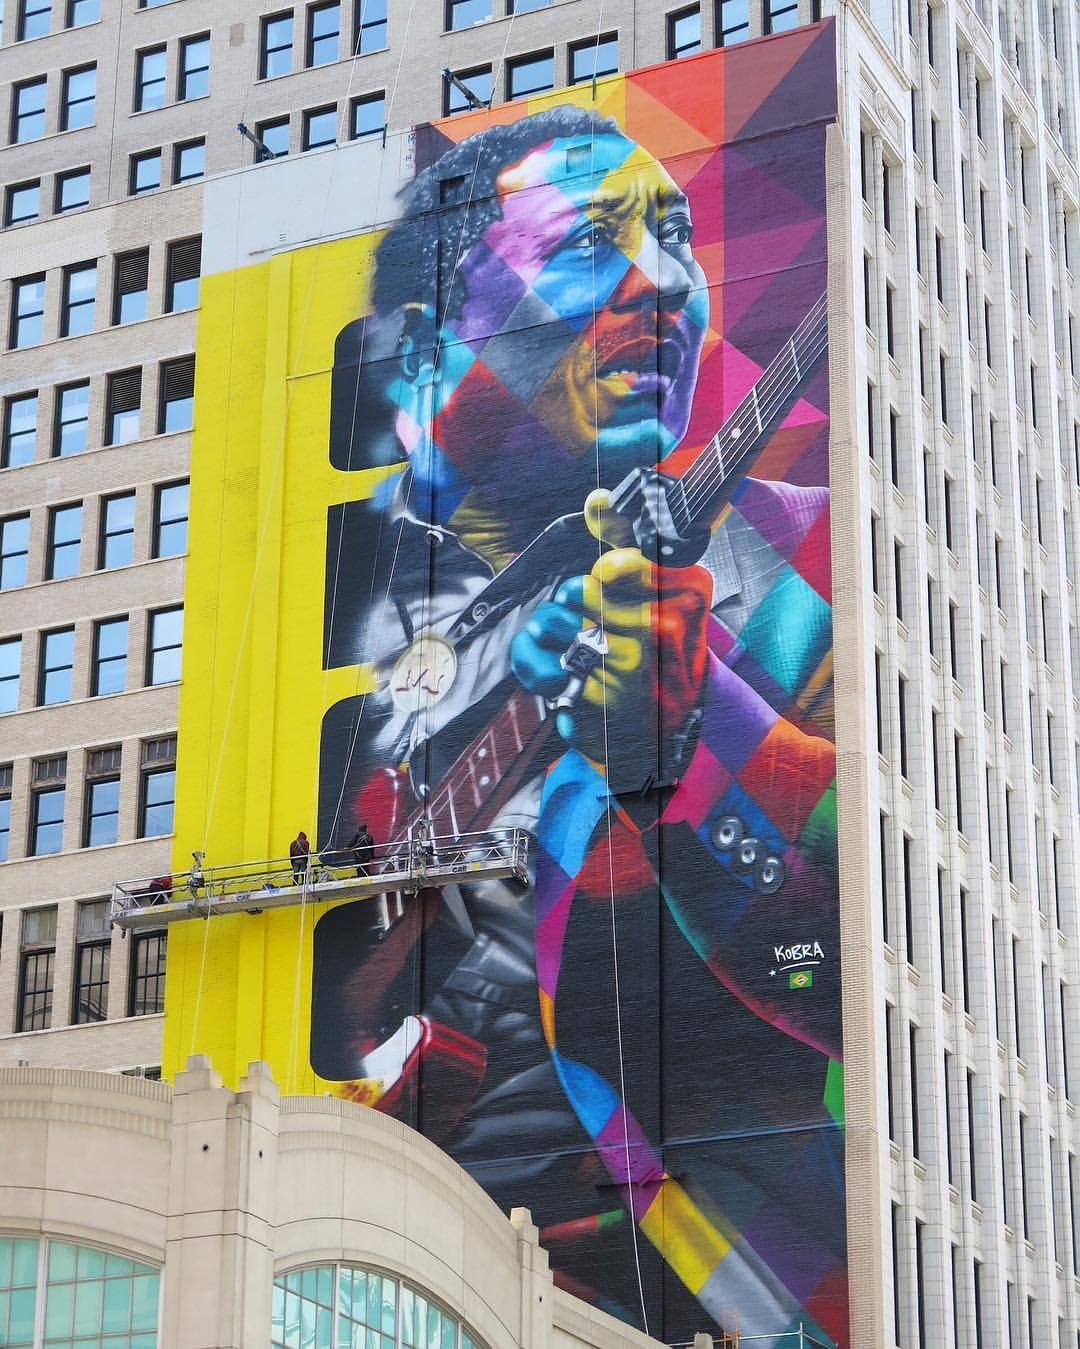 Eduardo Kobra At Work On A Massive Muddy Waters Mural In Chicago - Clever free bird see graffiti spotted in chicago leads to a creative surprise